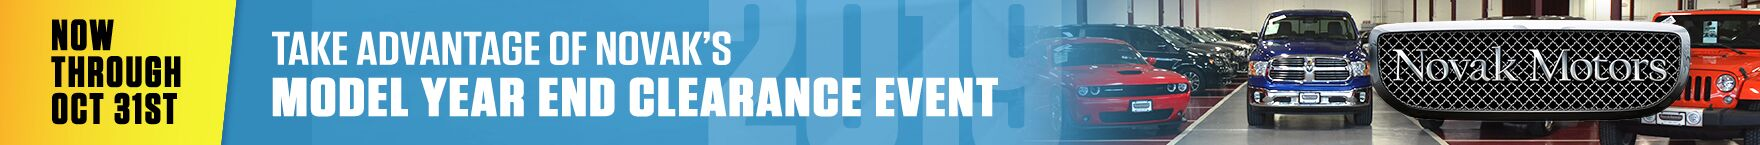 Model Year End Clearance Event